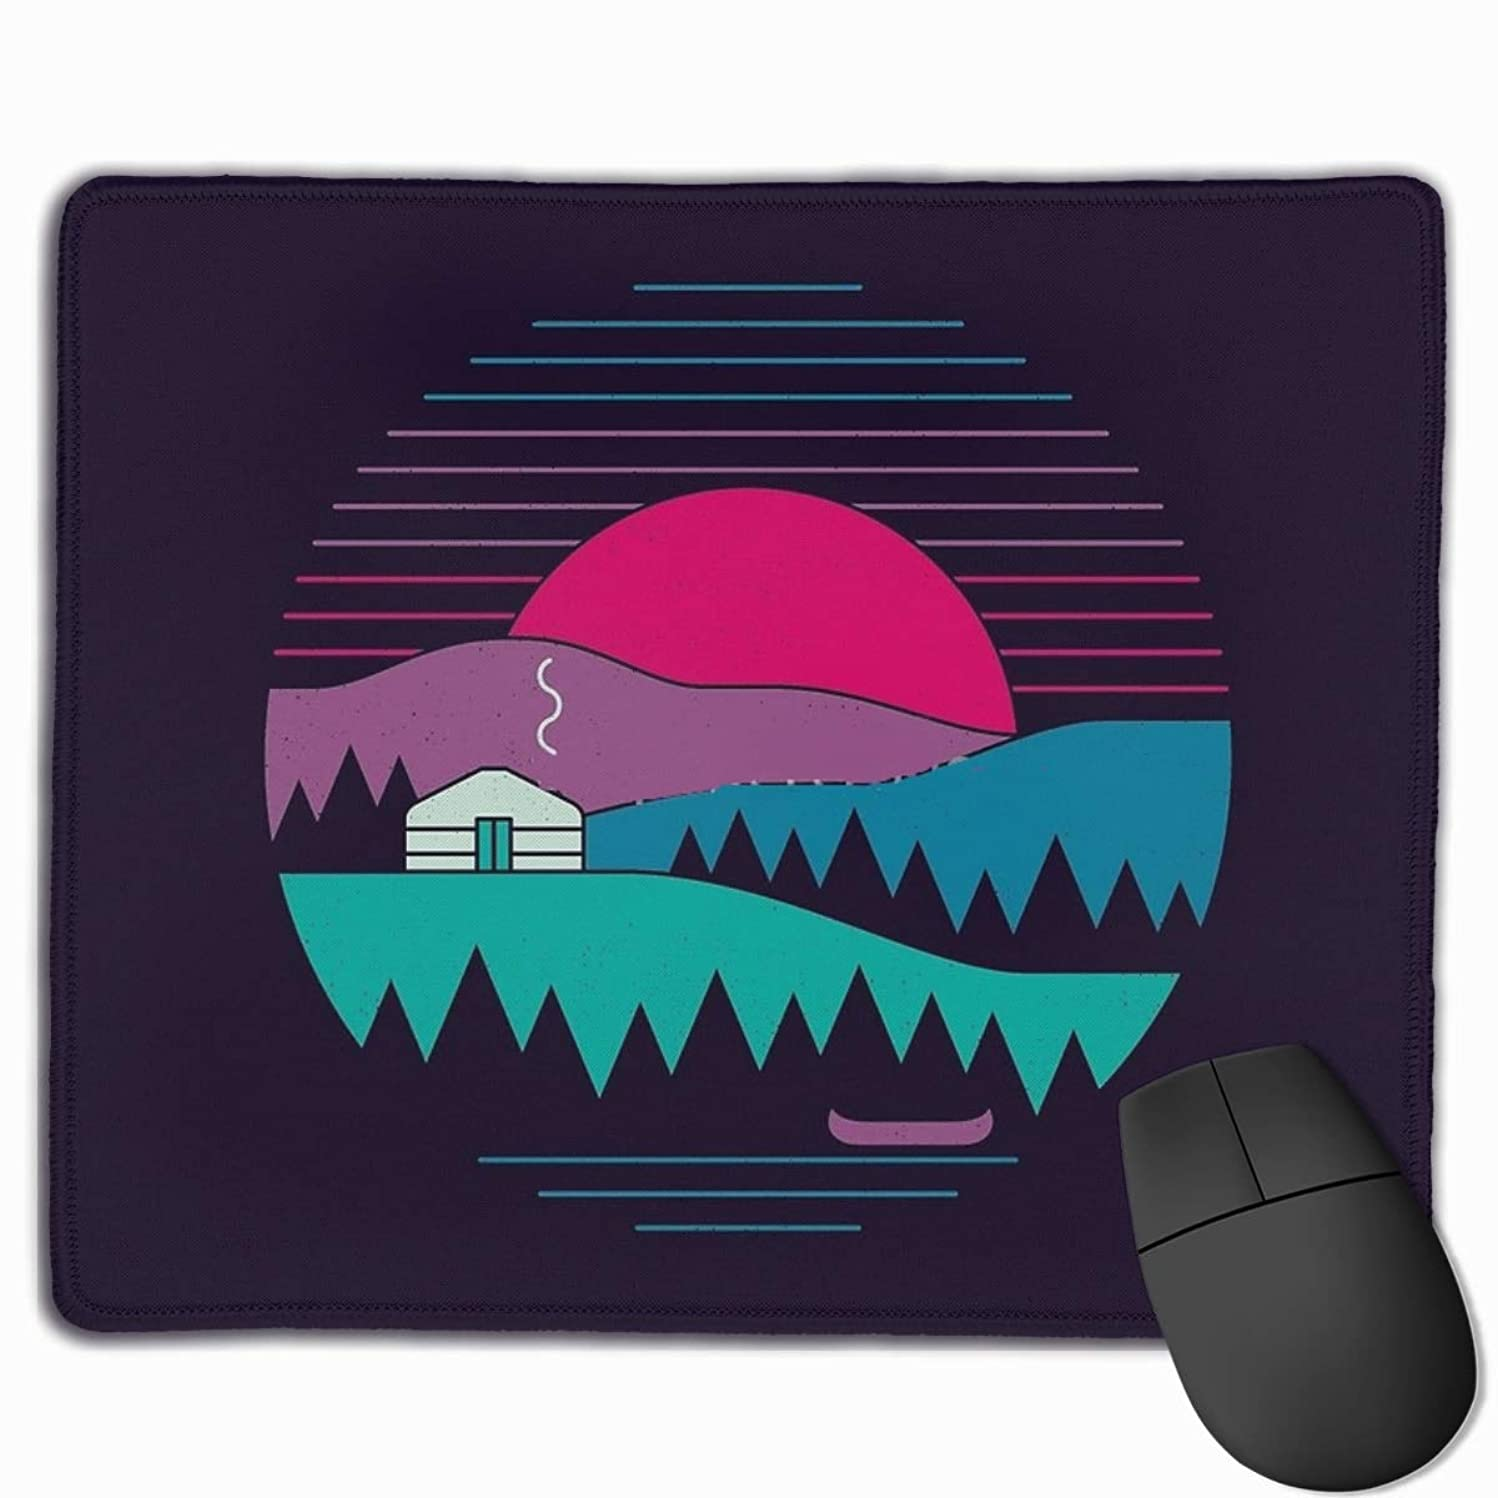 Back to Basics Gaming Mouse Pad with Non-Slip Rubber Base Mouse Mat Rectangle Mouse Pads for Home Office Working Desk Laptop